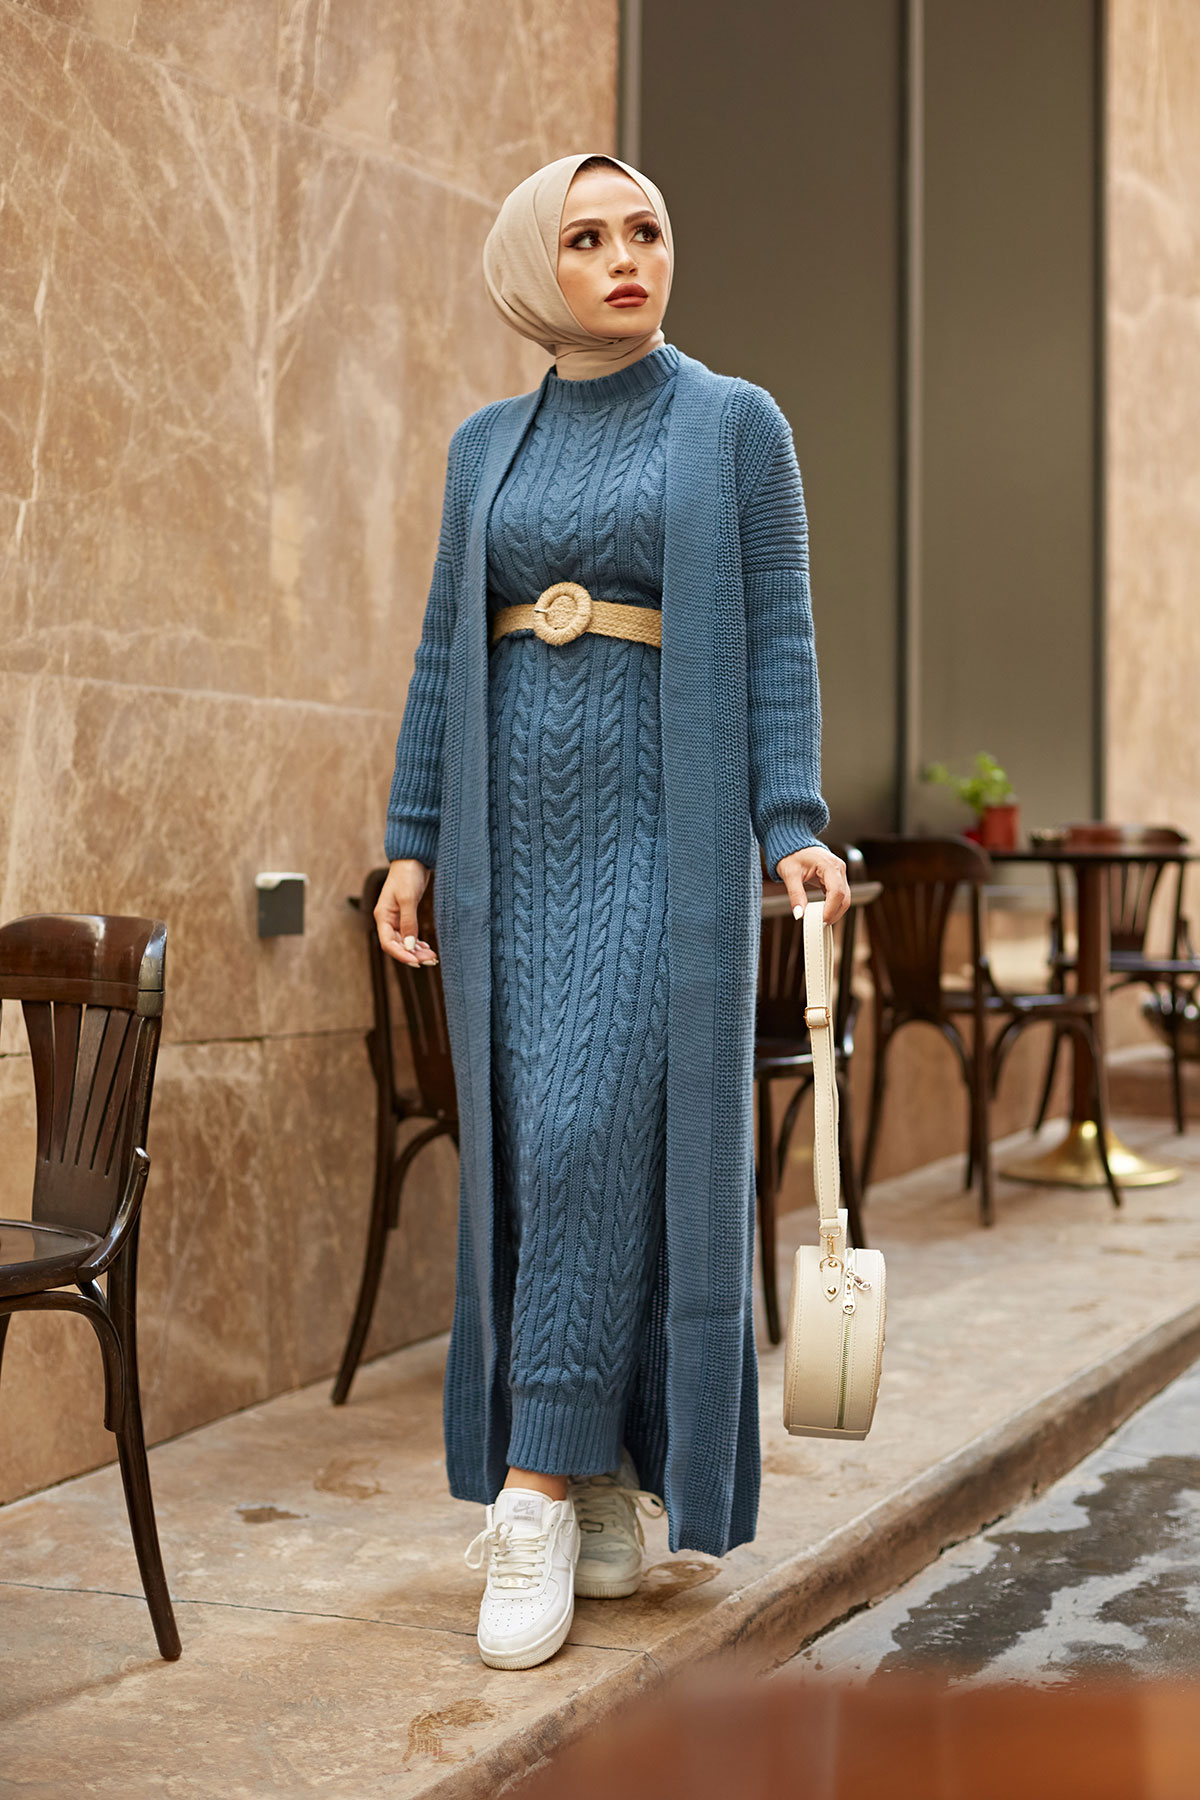 2 Pieces Woman Dress Knitted suit,New version, Color options,thick warm women's dress,Islamic Clothing,Muslim clothings,Turkey Women Women's Clothings Women's Dresses cb5feb1b7314637725a2e7: Anthracite|Beige|Brick|Camel|Fuchsia|Indigo|Light blue|Pine Green|Powder|ROSE|TAN|black|Navy blue|Sky Blue